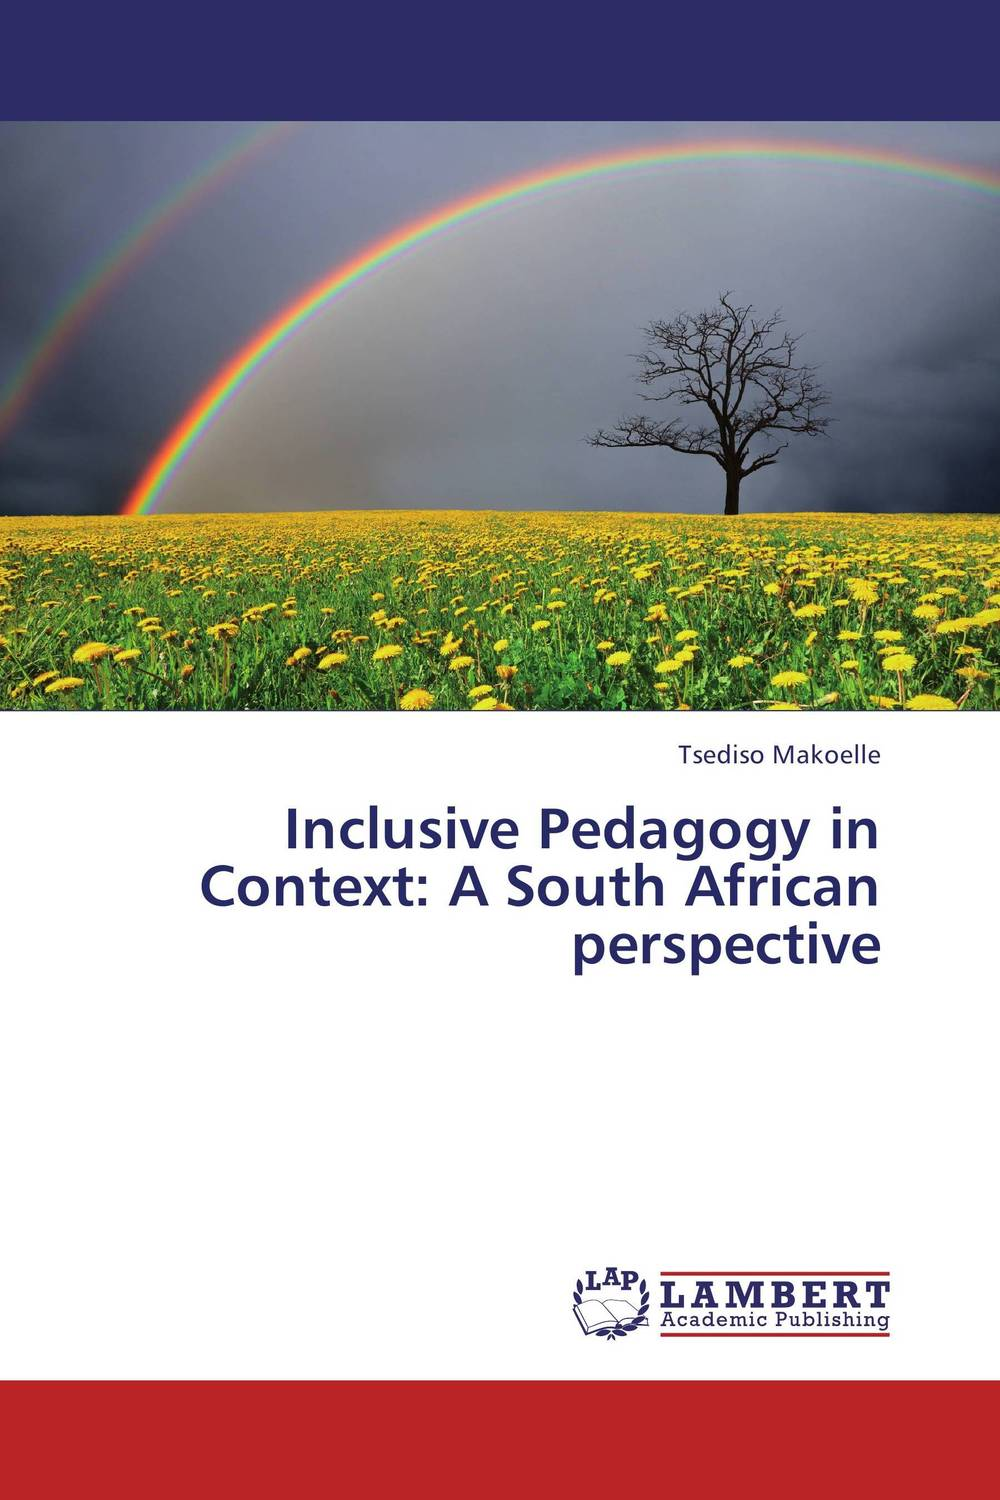 Inclusive Pedagogy in Context: A South African perspective